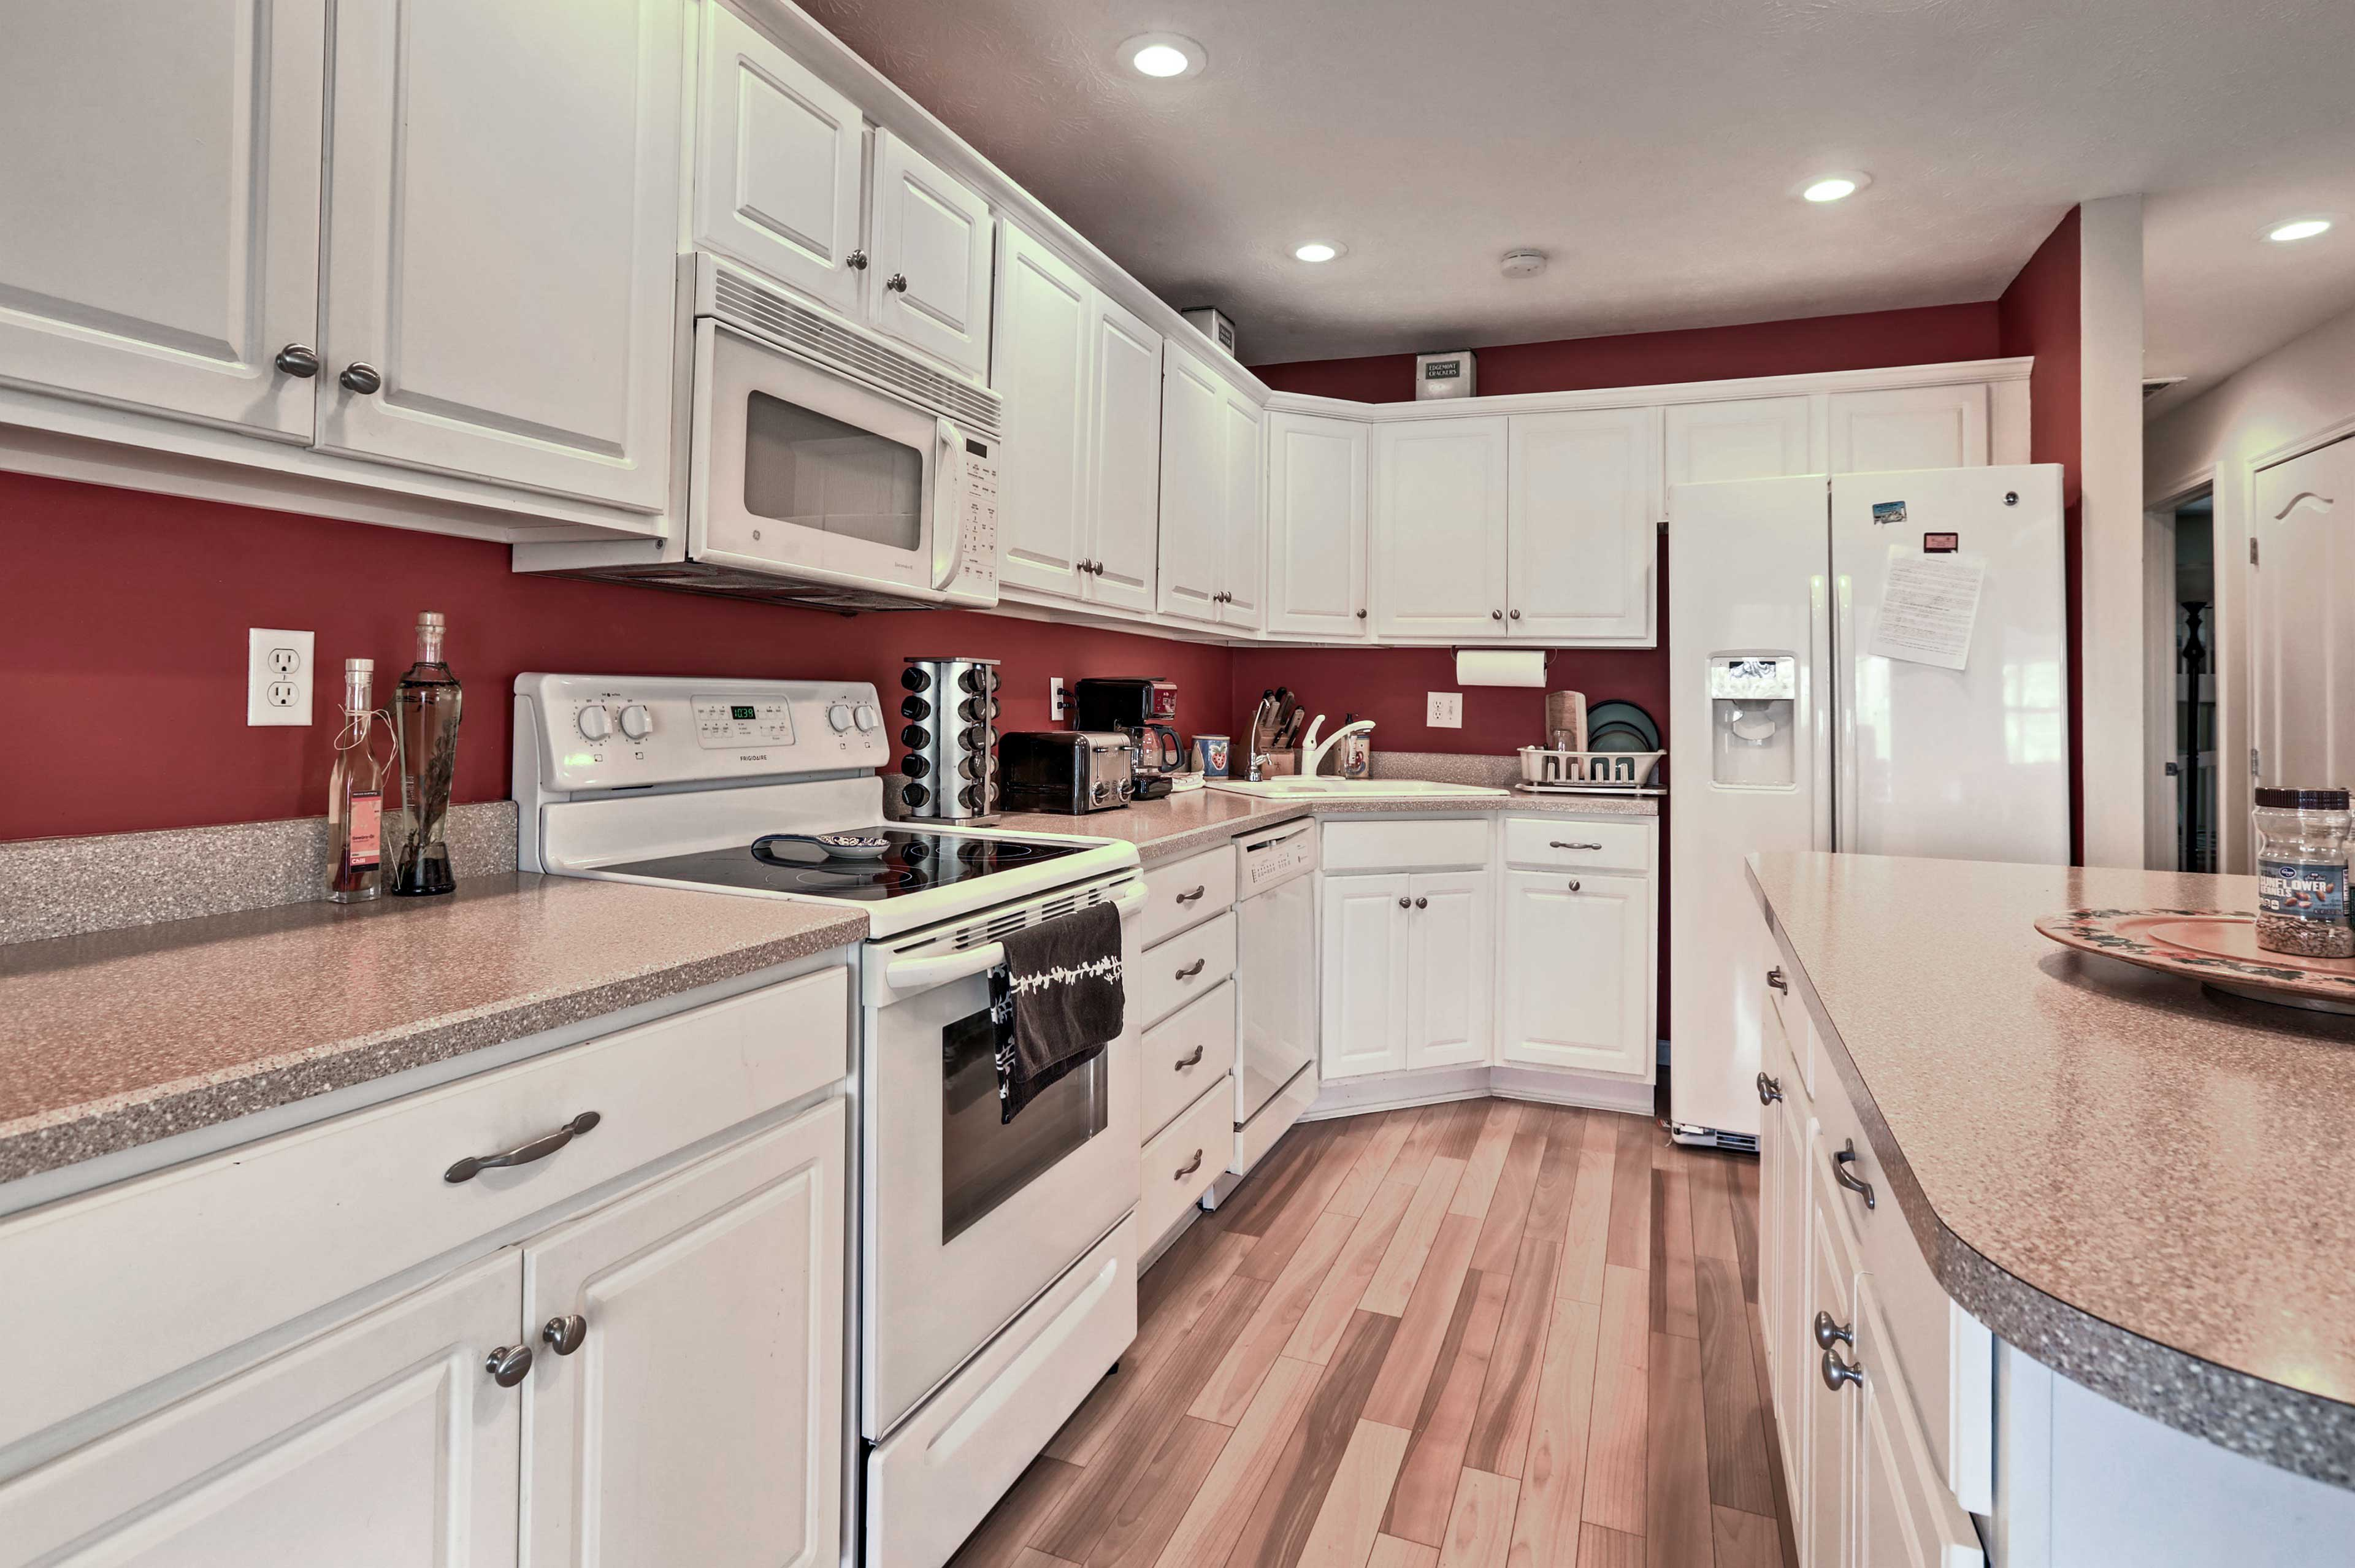 White cabinets and appliances give this bright kitchen a clean, fresh vibe.